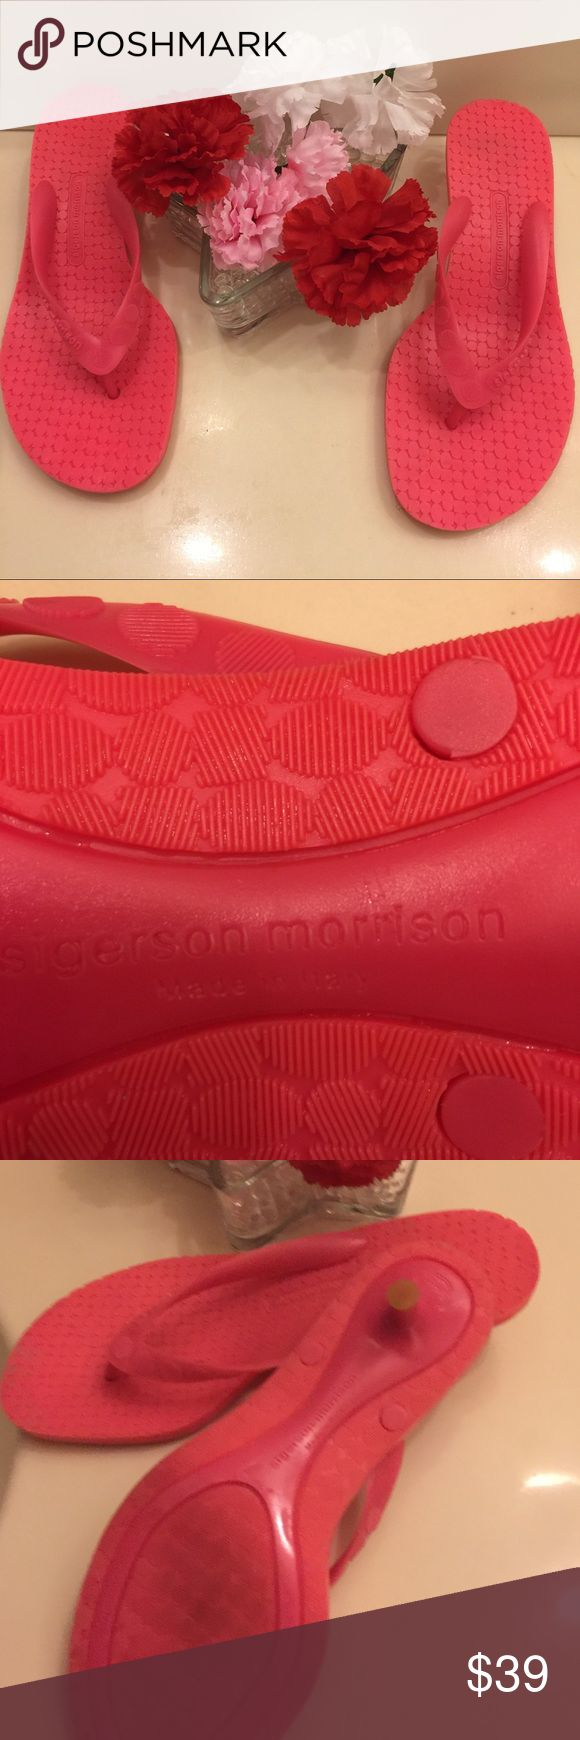 """Sigerson Morrision Kitten heels Flip Flop SIGERSON MORRISON Neon-Fuchsia Jelly Rubber Kitten Heel Thong Flip Flops Sandals, almost new. It was worn one time only.   Size: 5  Description & Details: Neon Fuchsia-Pink Jelly Rubber  Solid Straps  Slip-on Thongs Metal-Reinforced Kitten Heels Made in Italy Measurements:  Size: 7 Heel: 1.5"""" Condition: Minimal signs of wear at the soles and heels. Excellent preowned condition. Sigerson Morrison Shoes Slippers"""